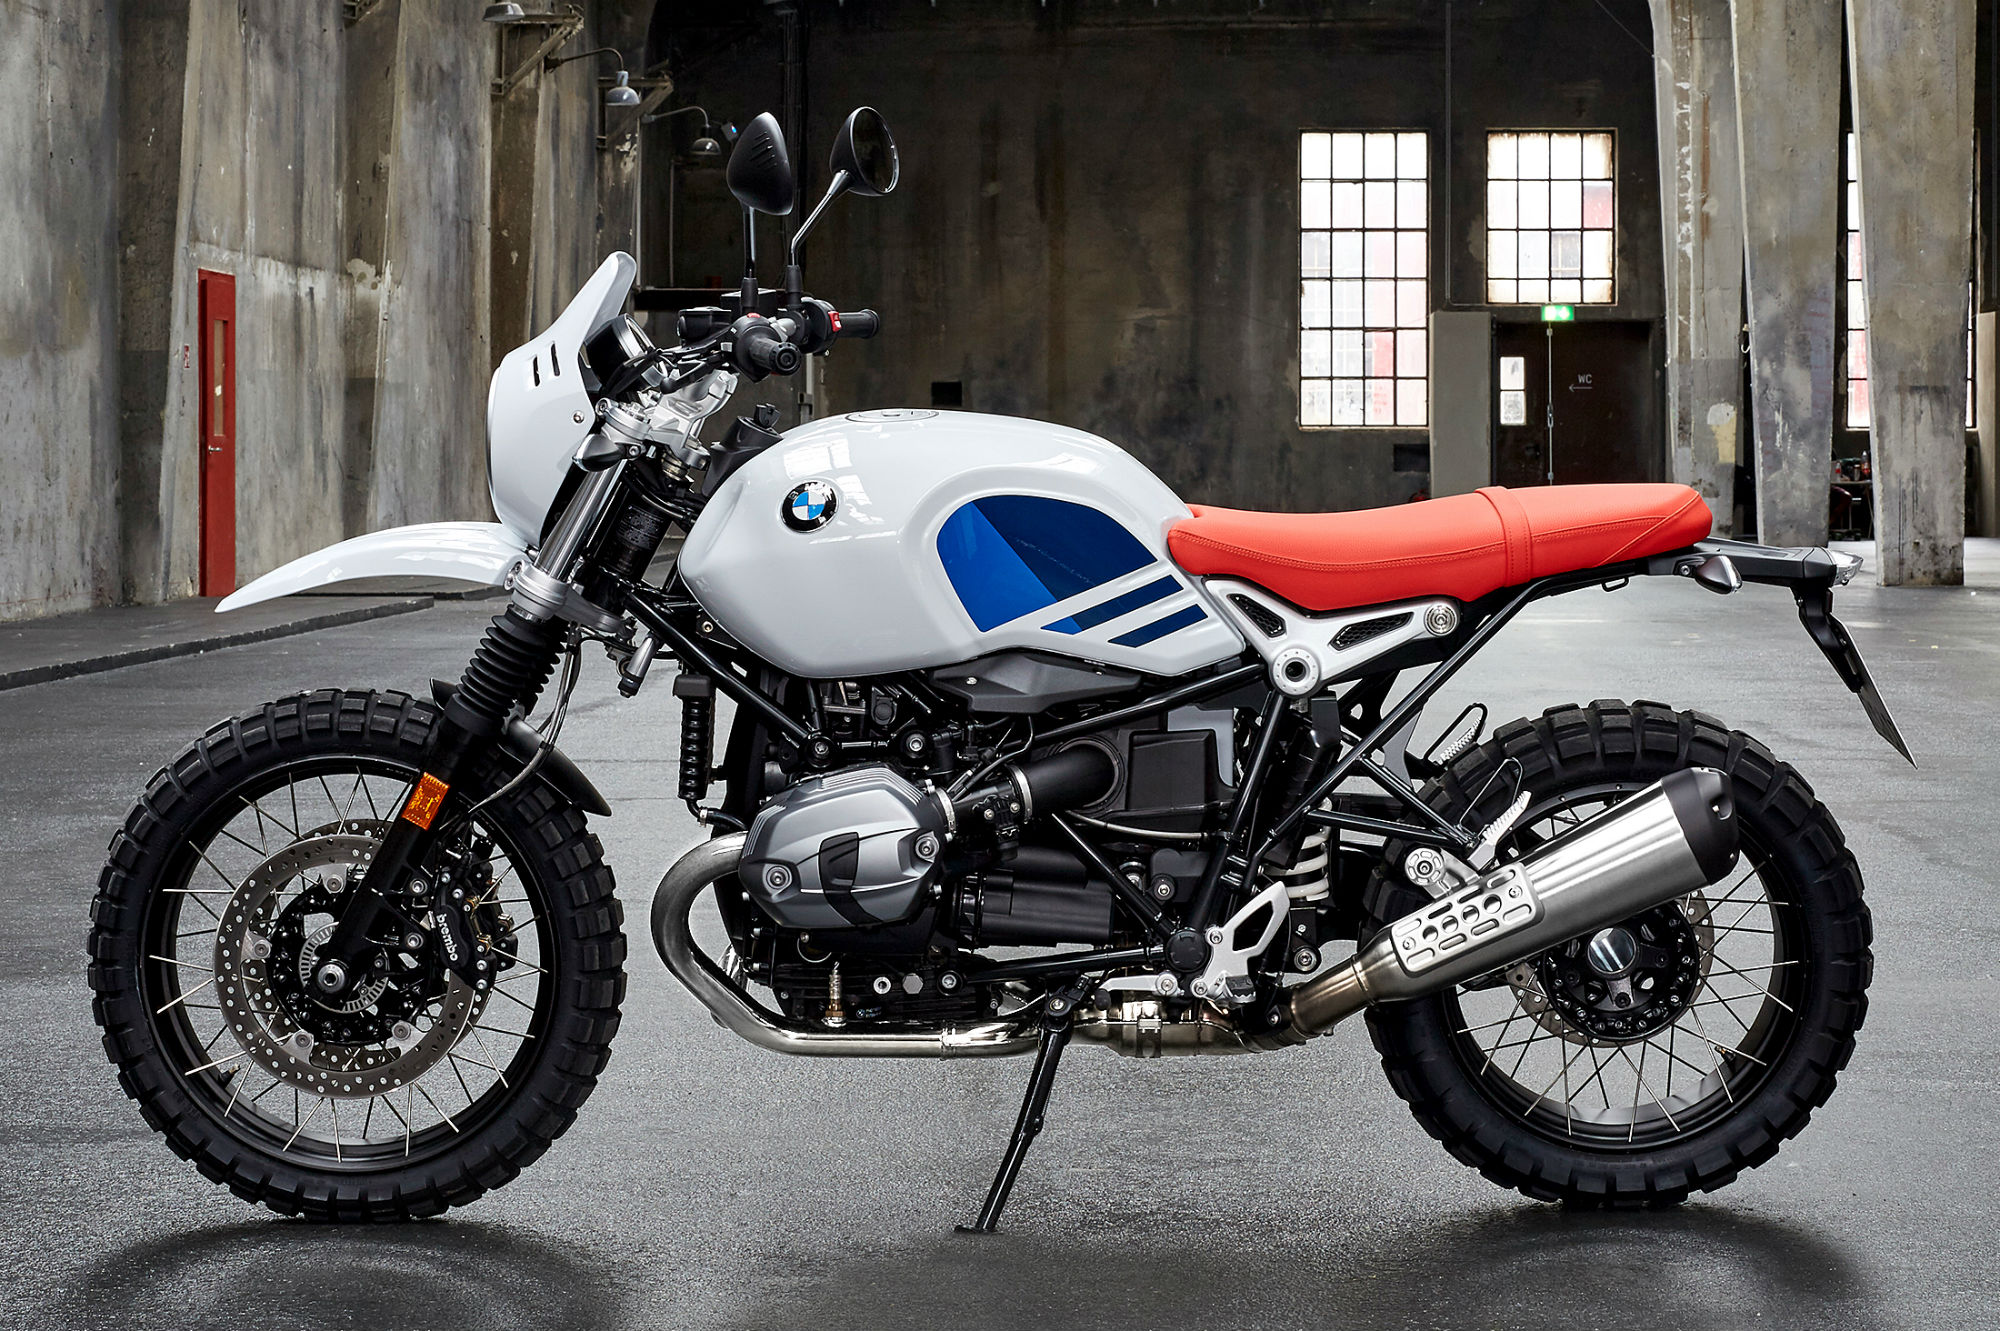 BMW releases new R nineT Urban G/S model